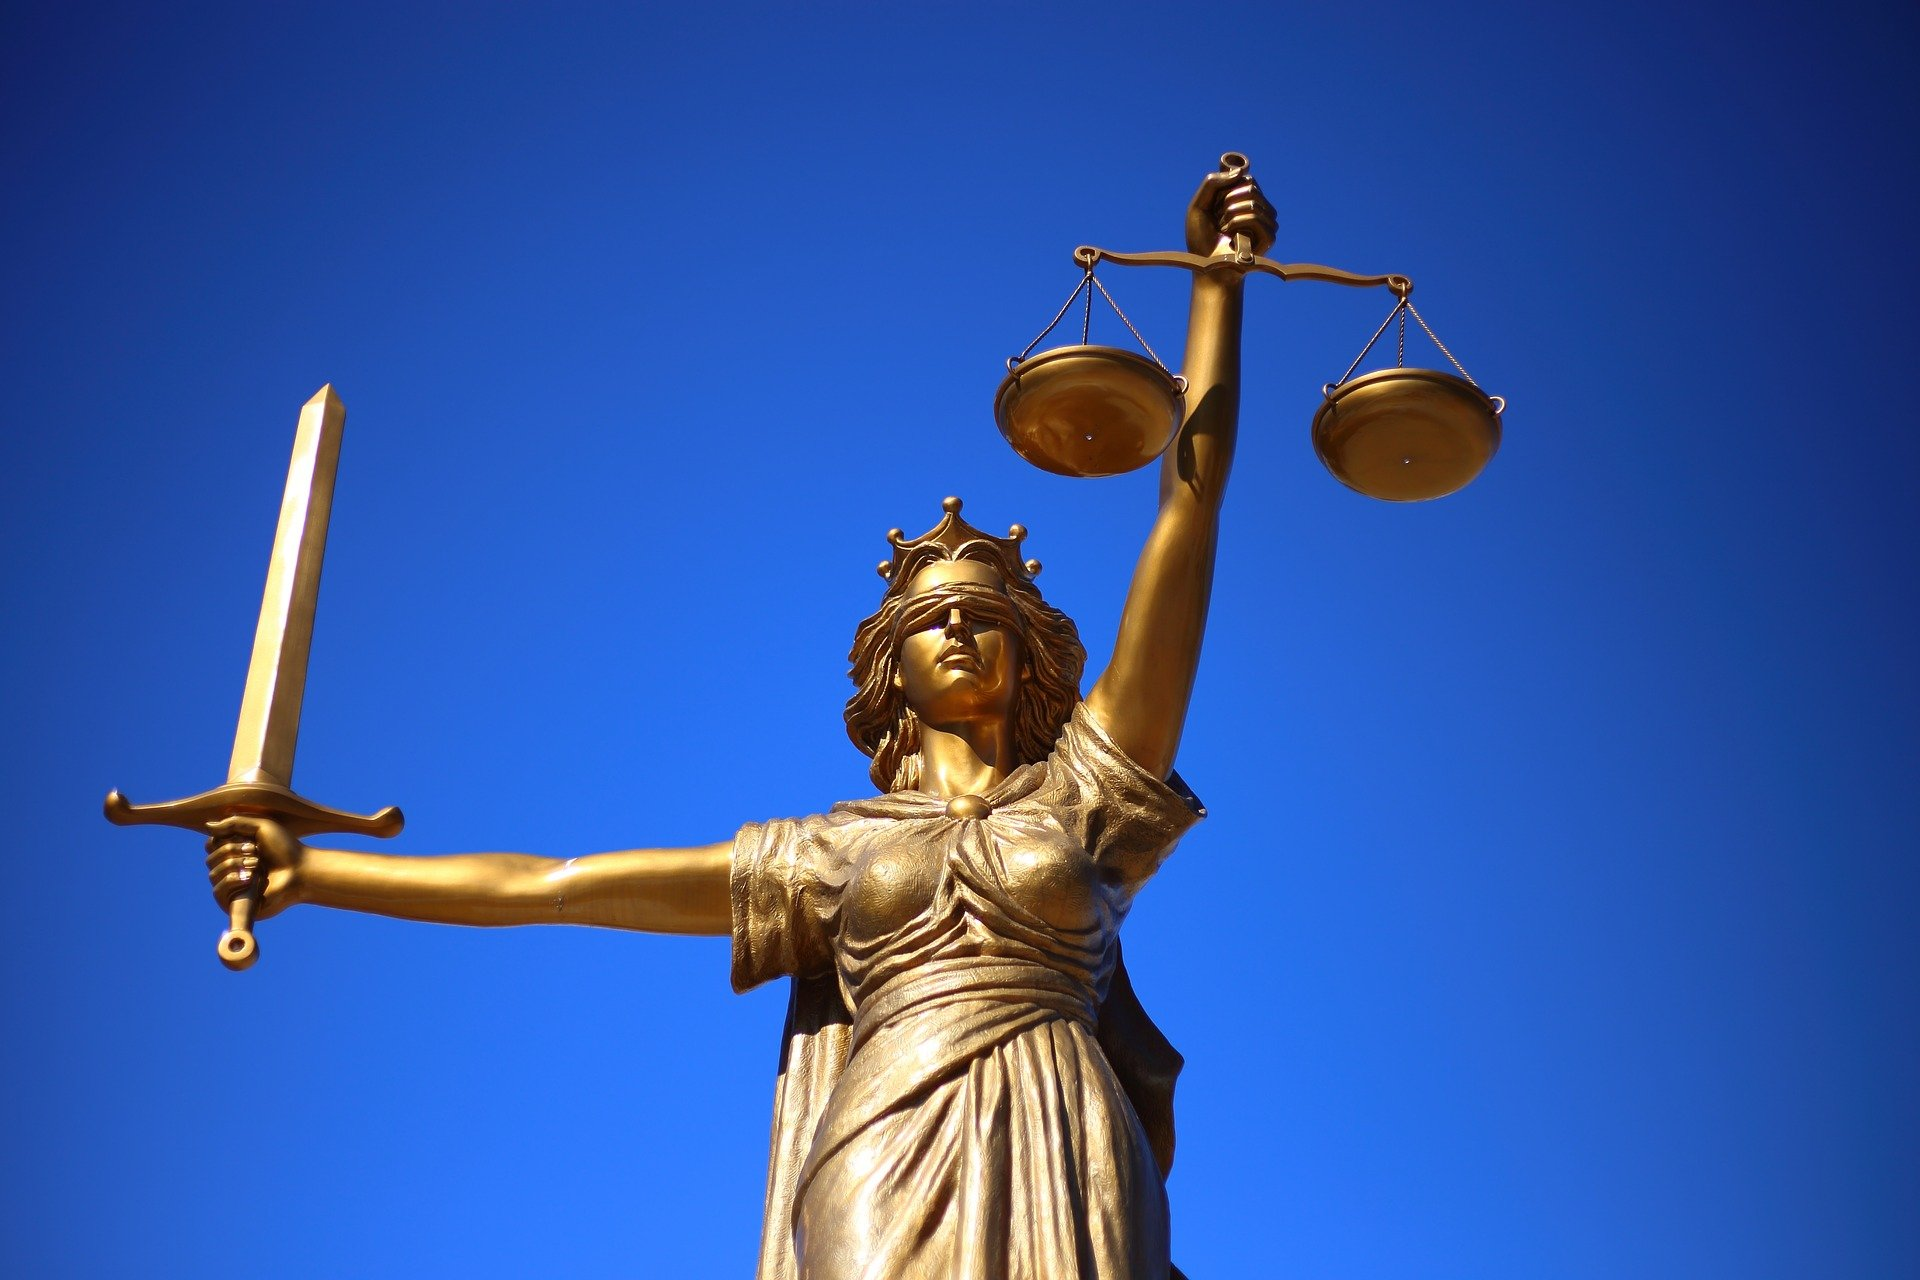 photo of gold statue of lady justice holding scales and sword